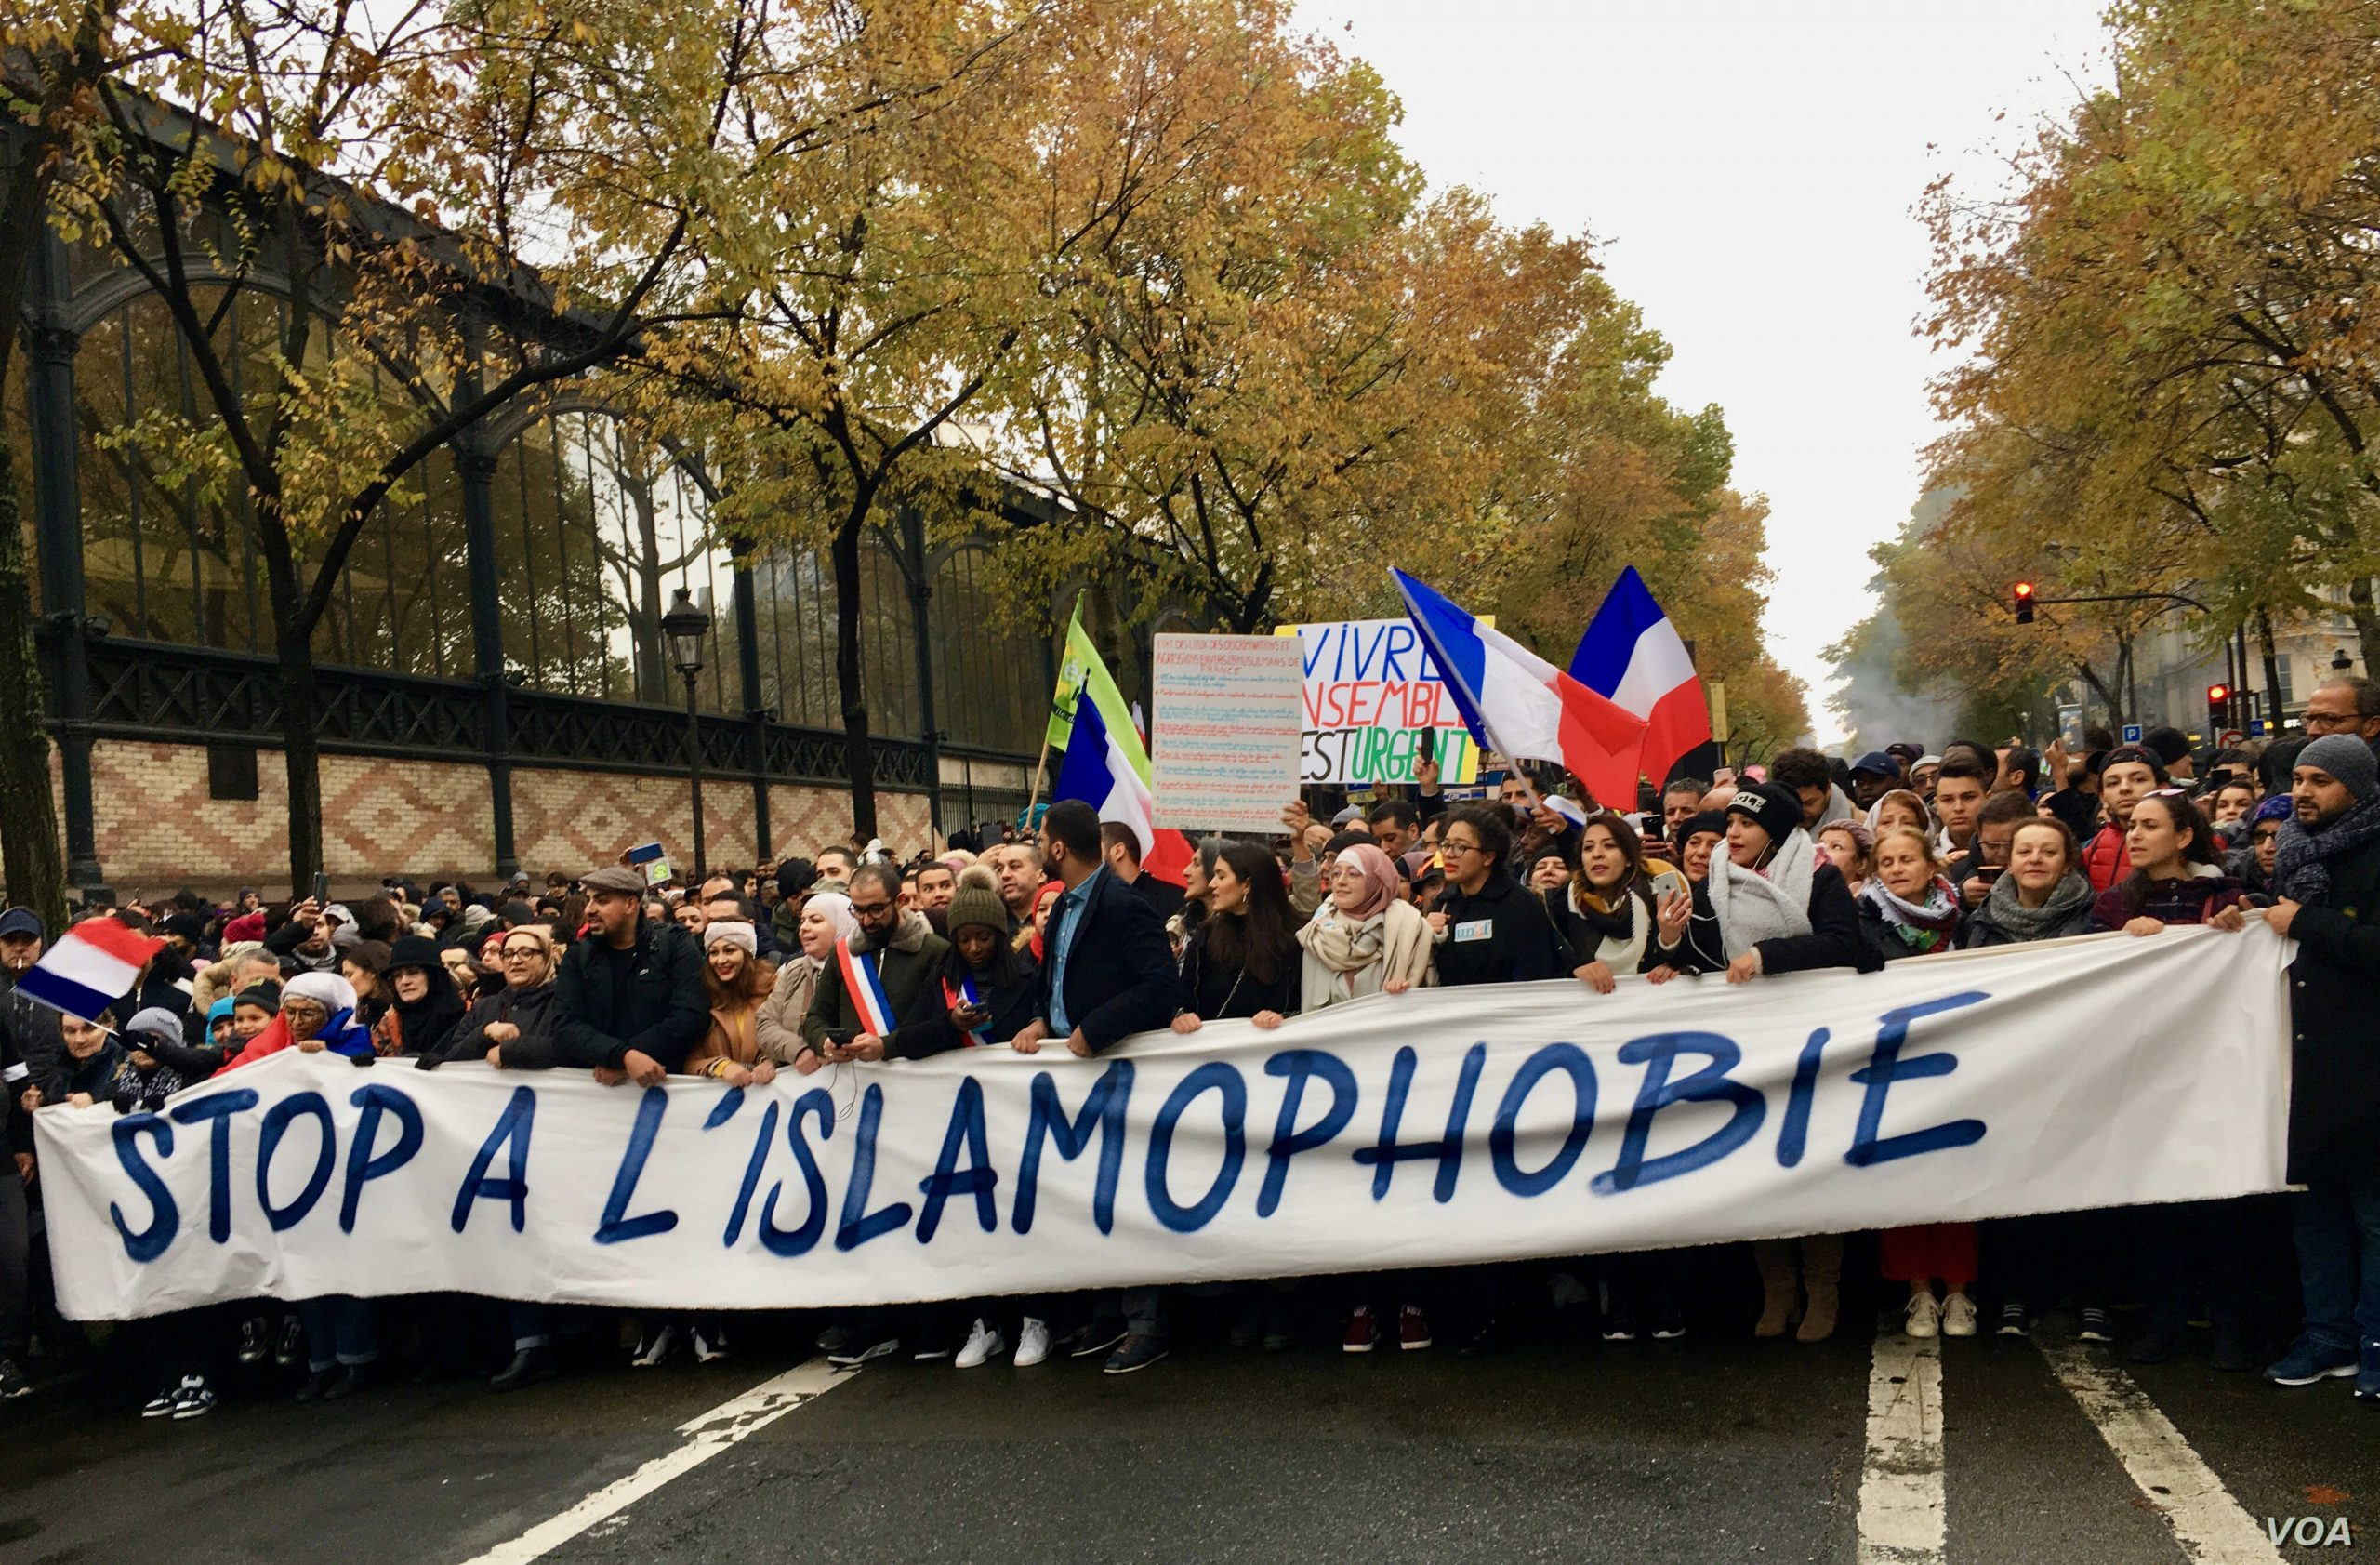 France Sees Protests, Knife Attacks And Azerbaijanis Threatening Armenians In Increasing Chaos